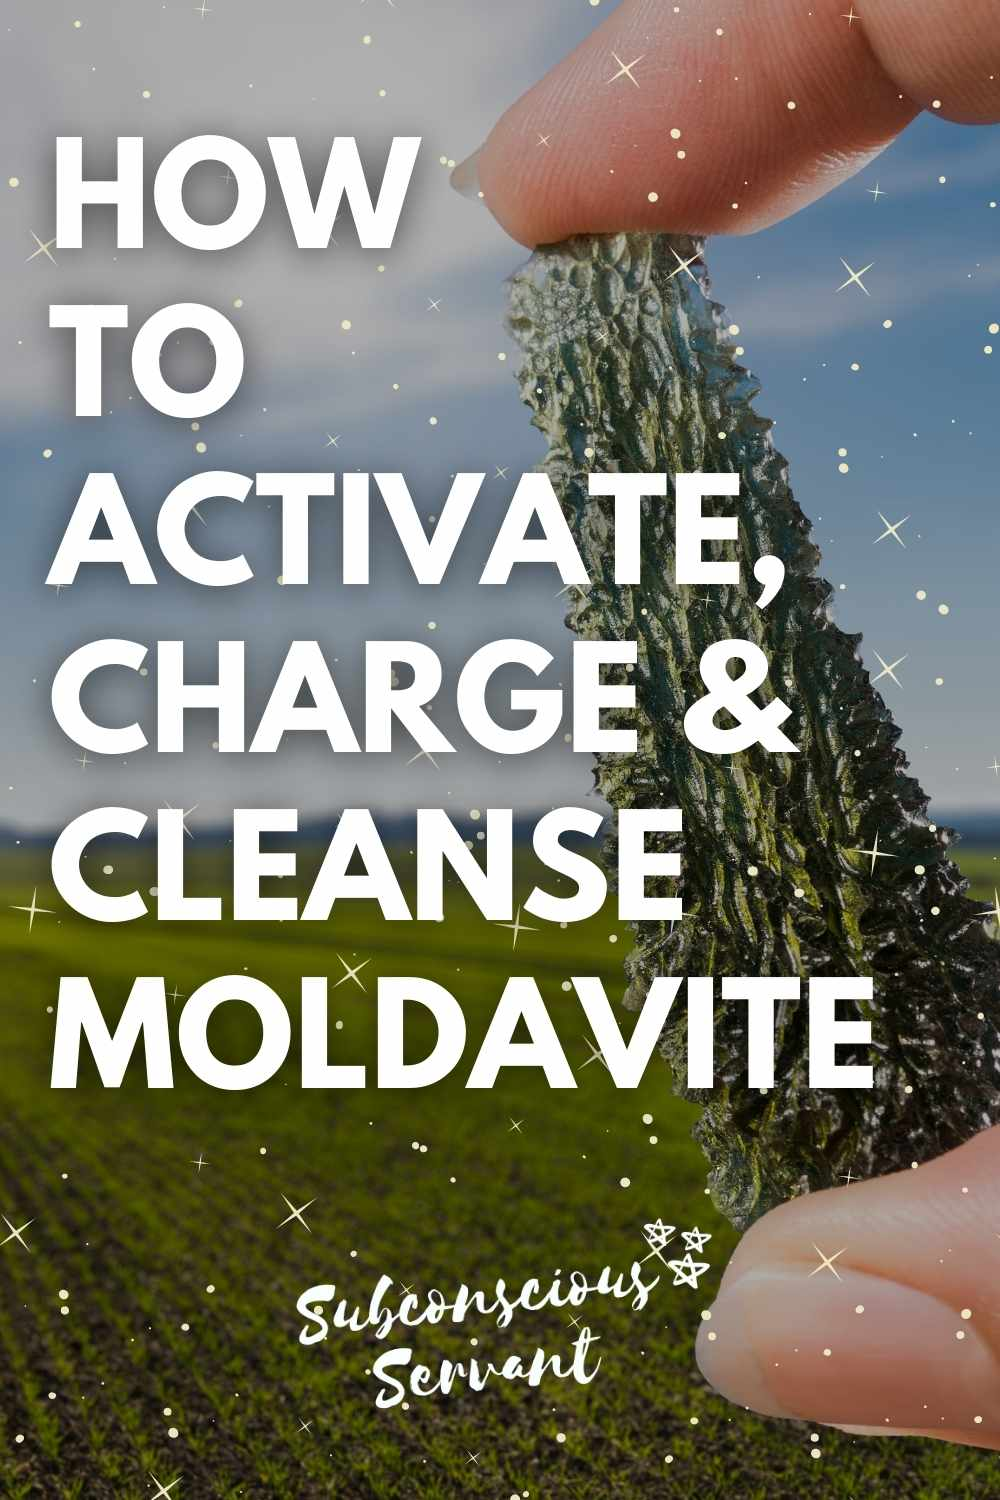 How To Activate, Charge & Cleanse Moldavite